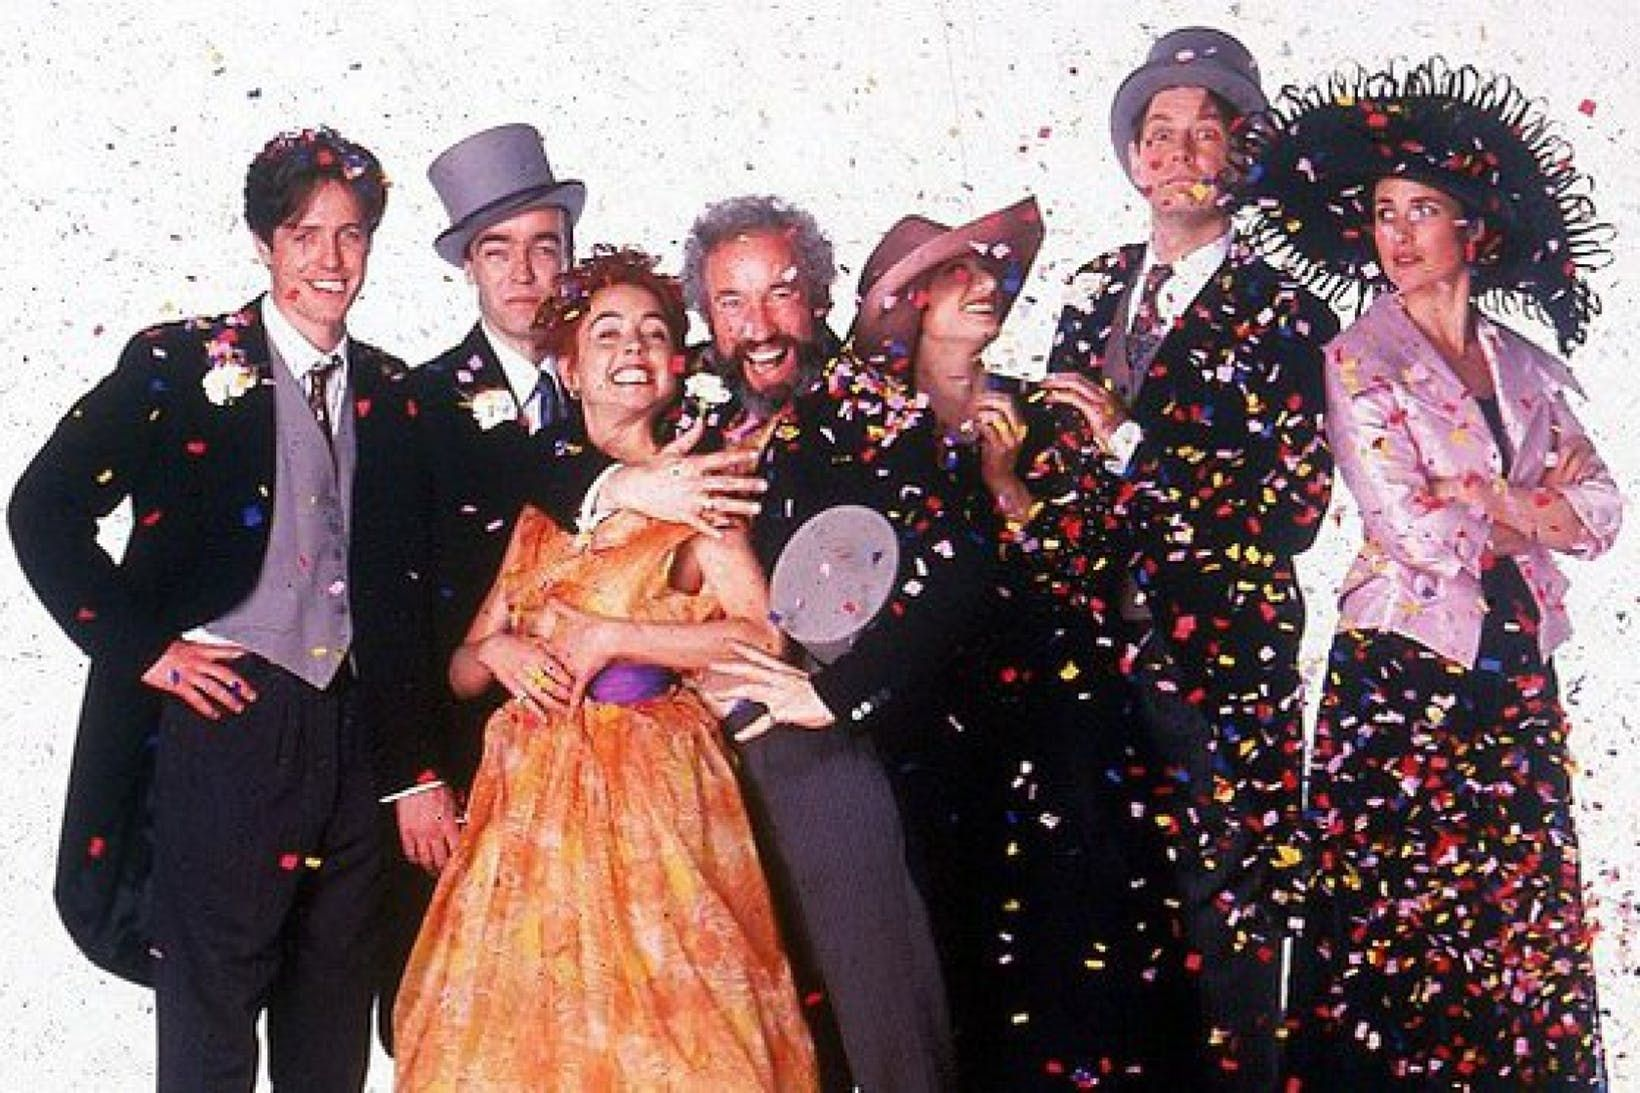 The cast of Four Weddings and a Funeral could have looked